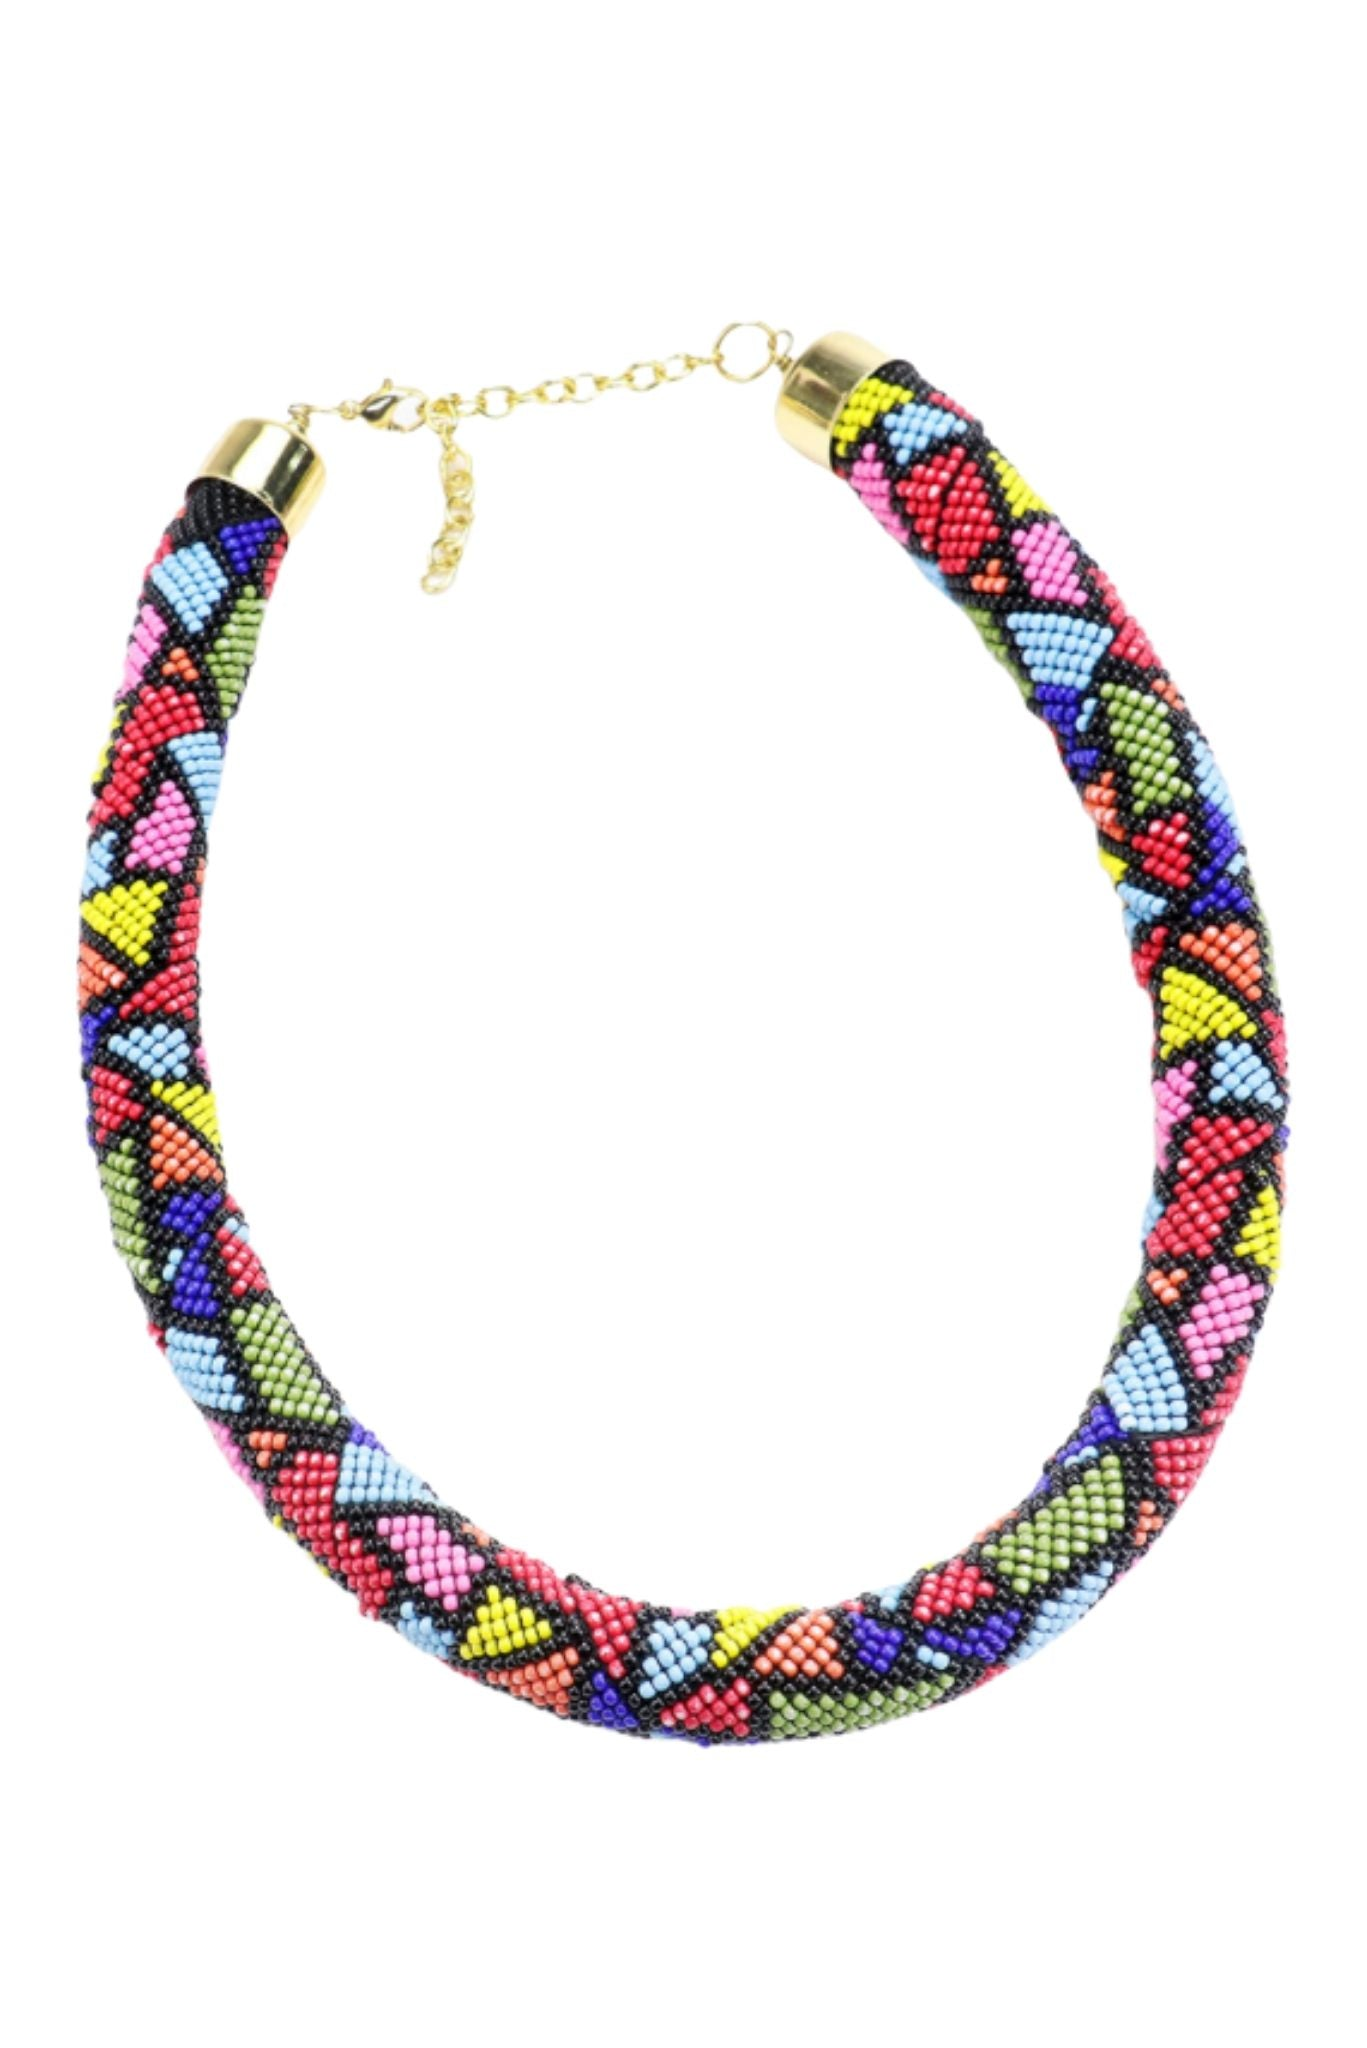 Multi Colored Beaded Rope Necklace